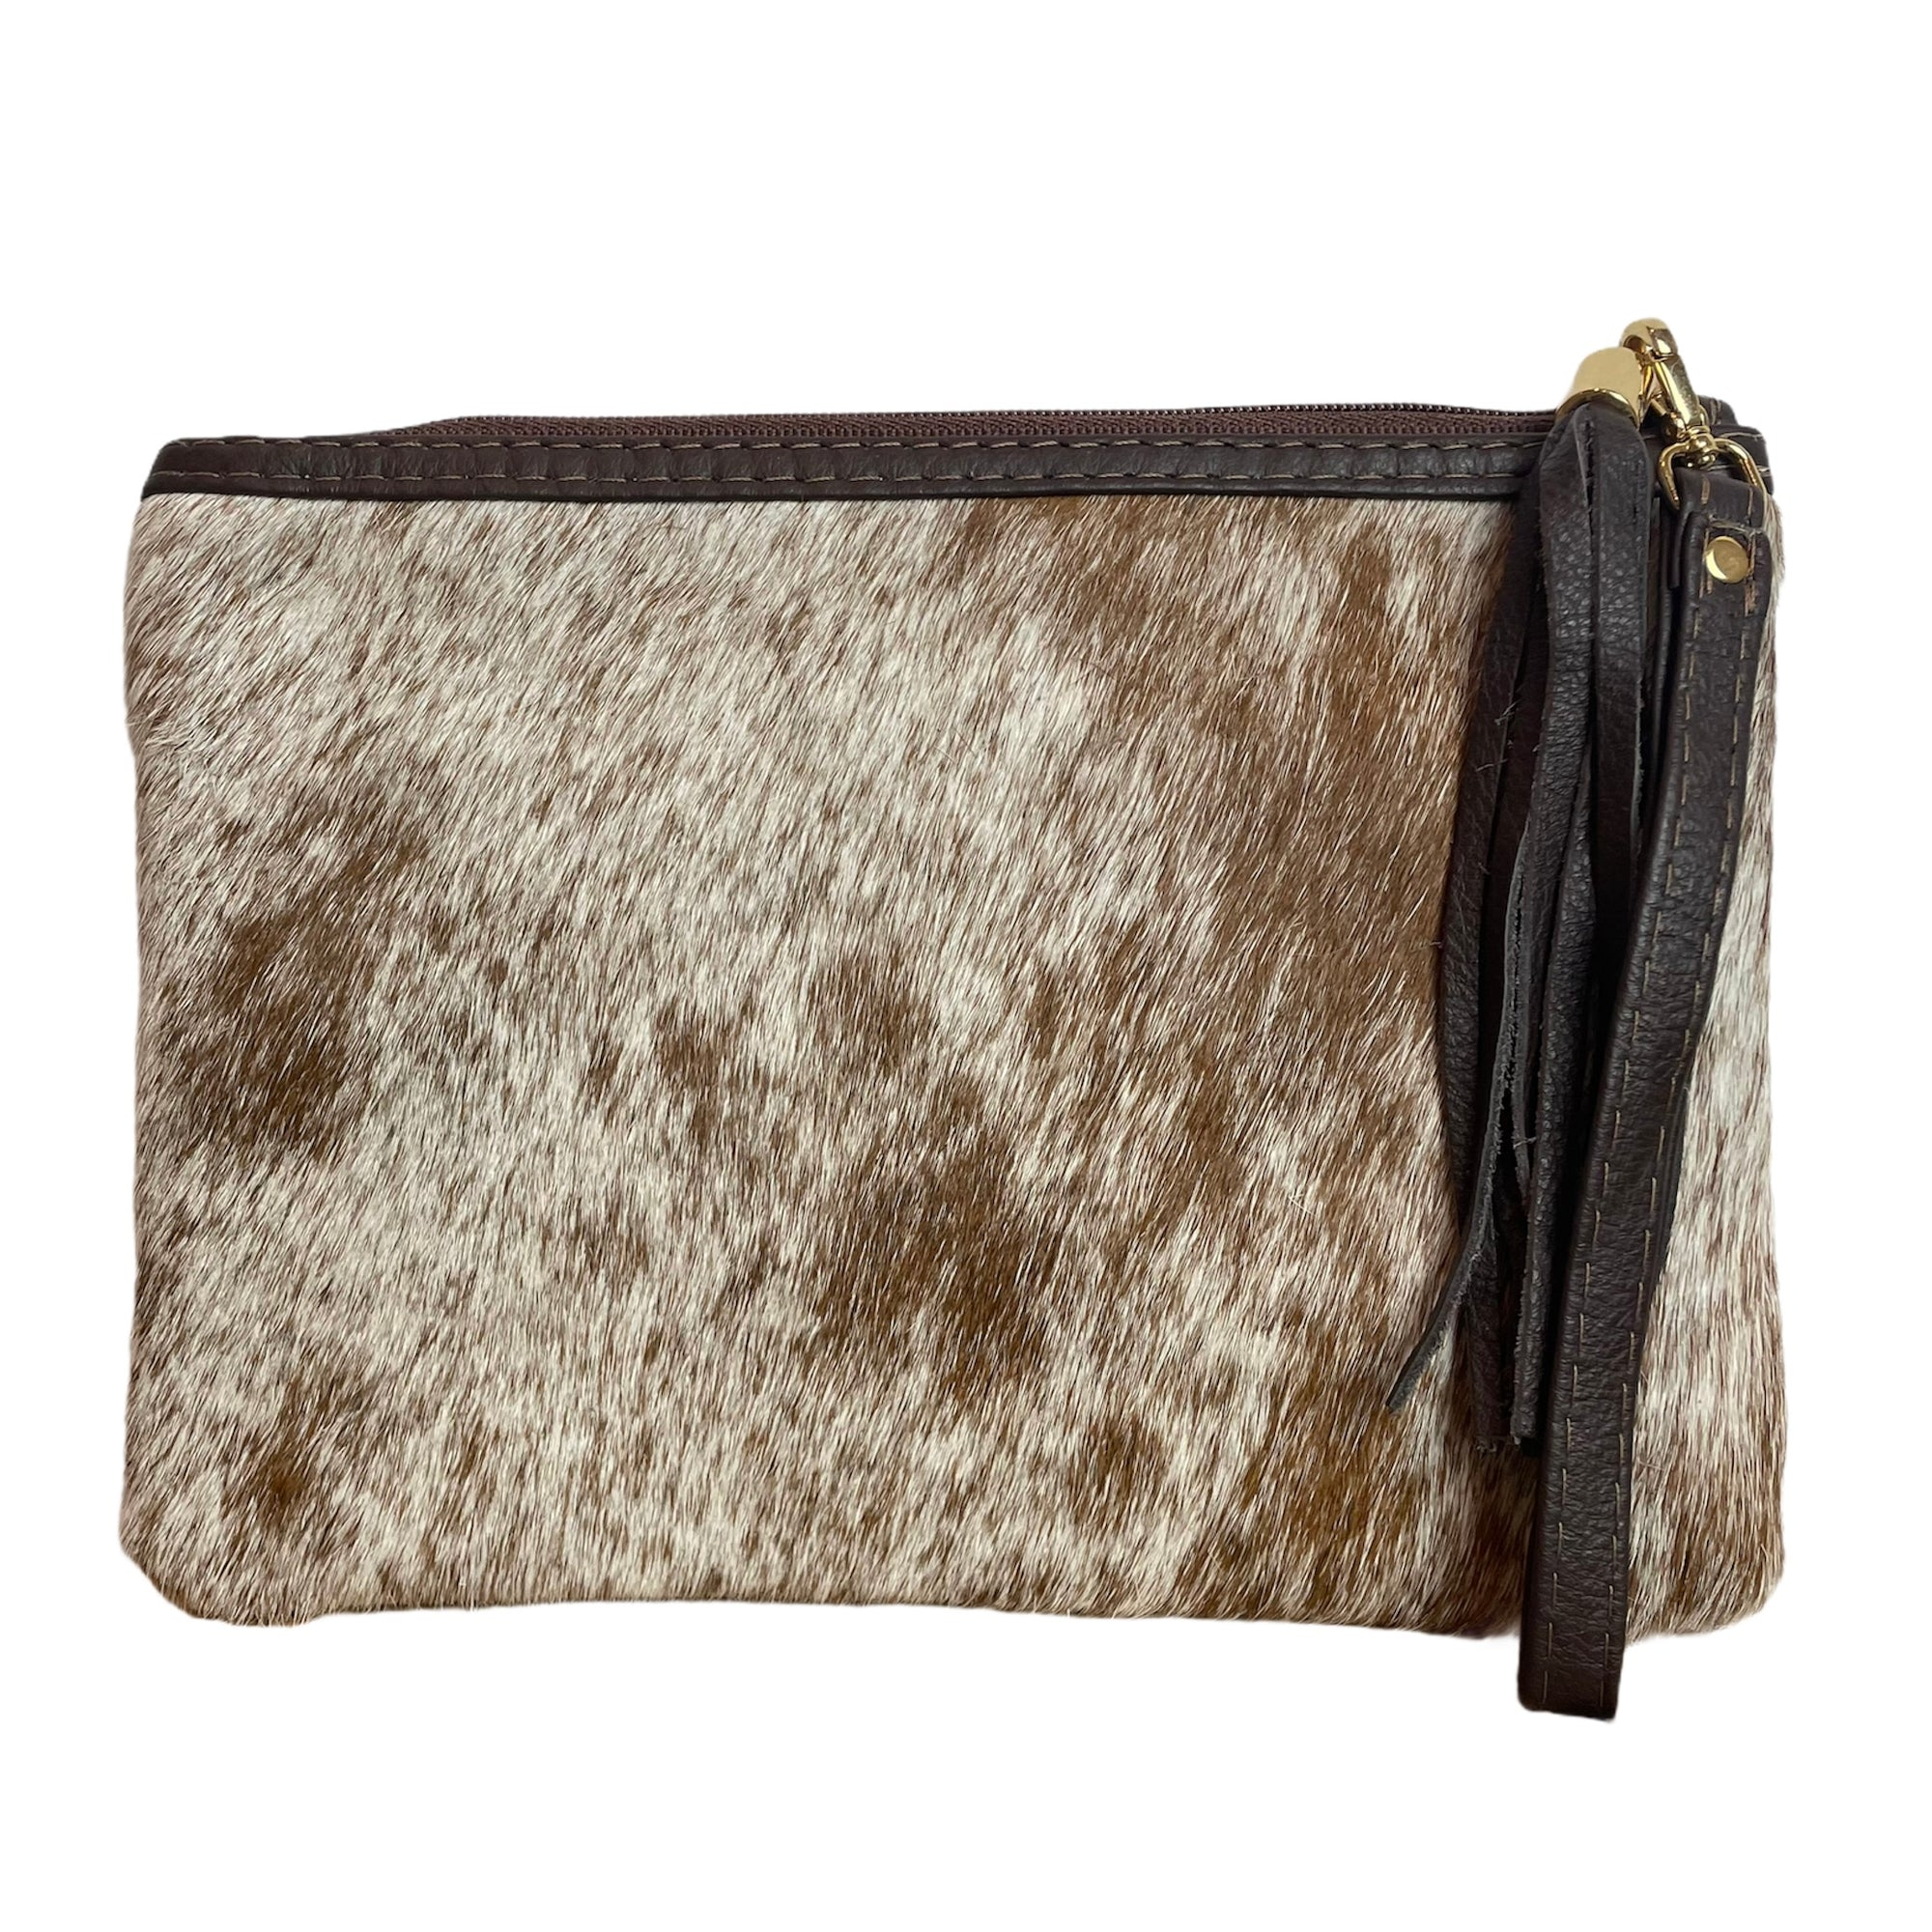 COWHIDE EVERYDAY SMALL CLUTCH - ASH SPECKLE. Izel Designs